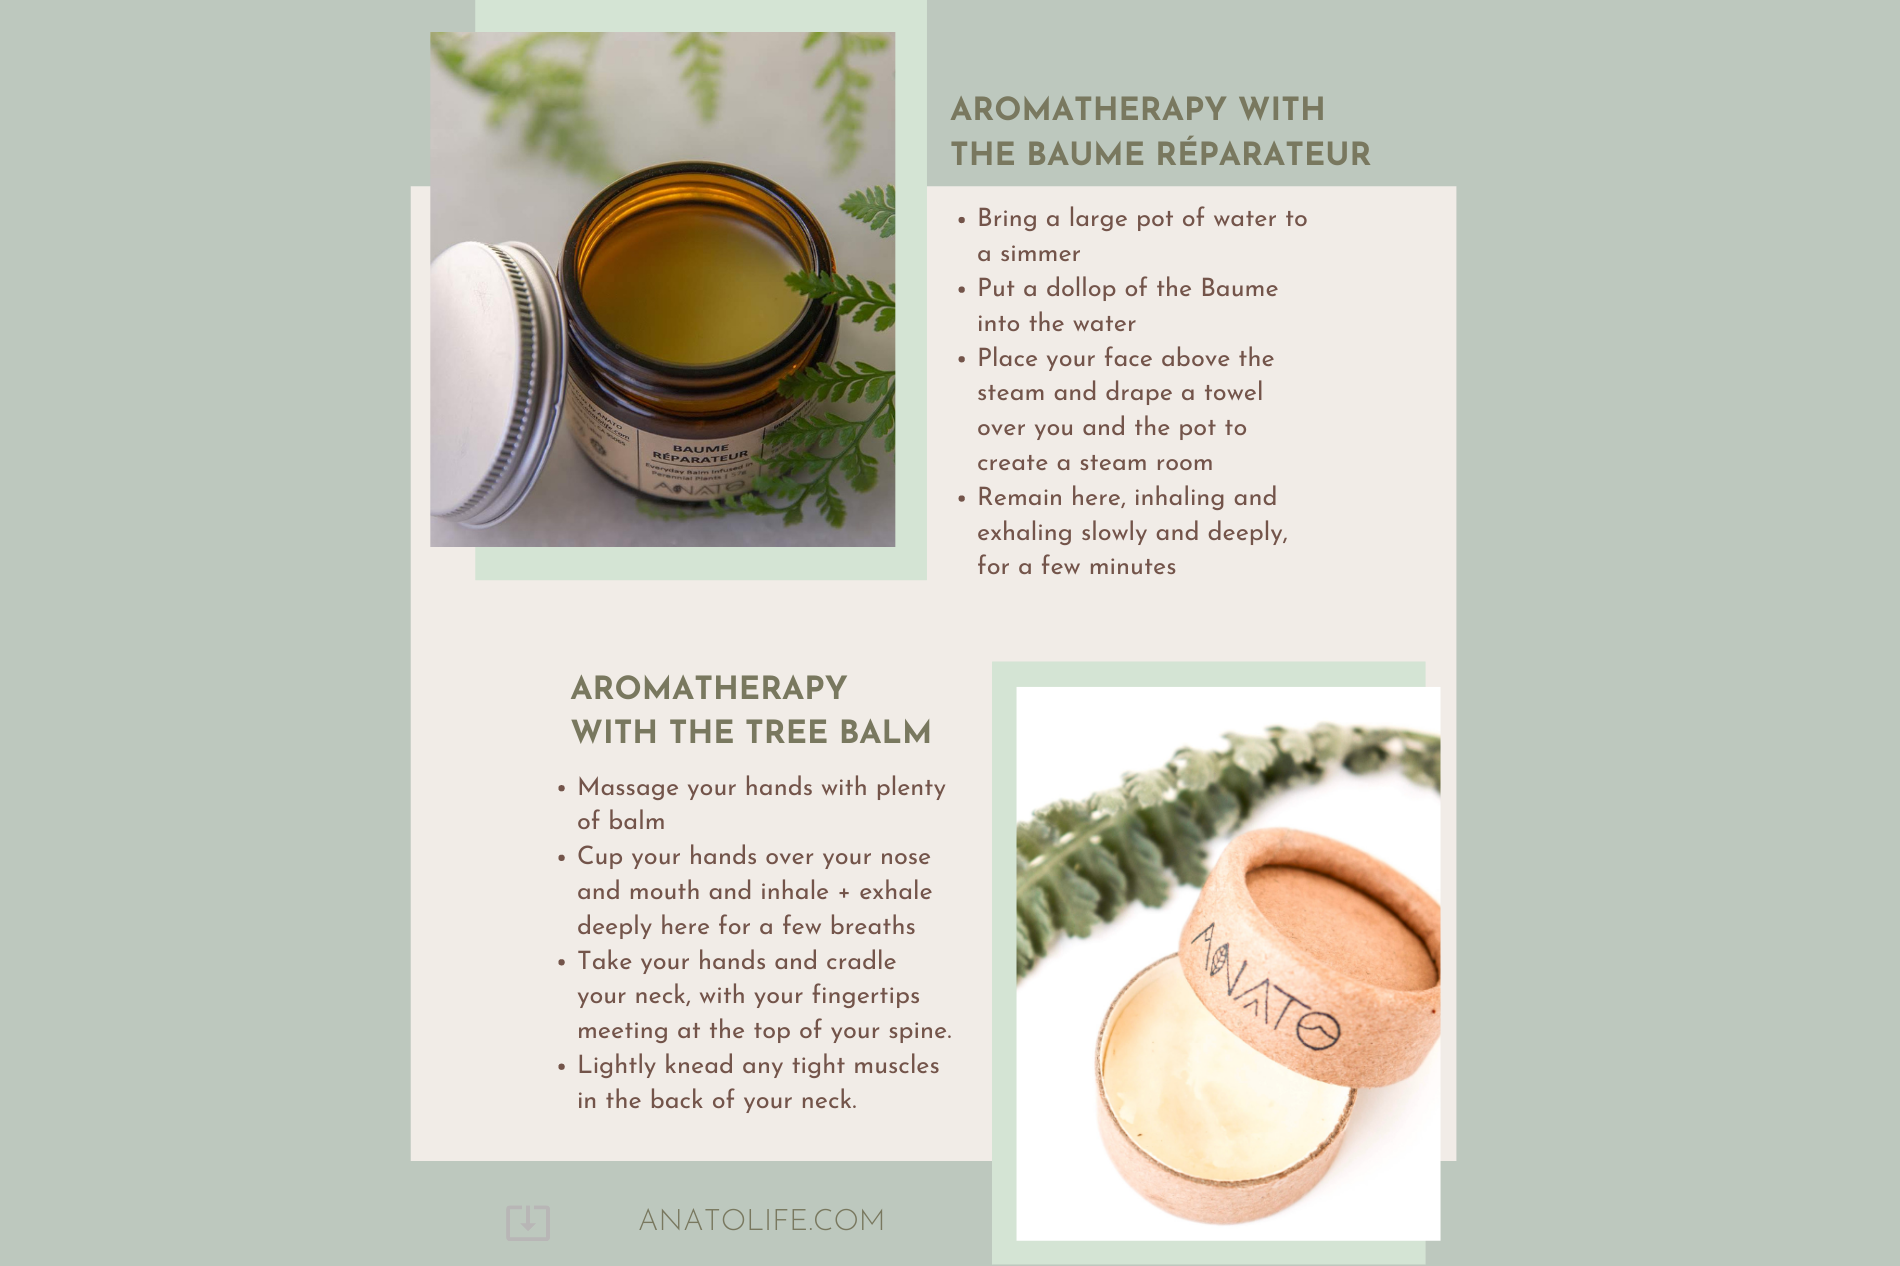 Aromatherapy with skincare from trees